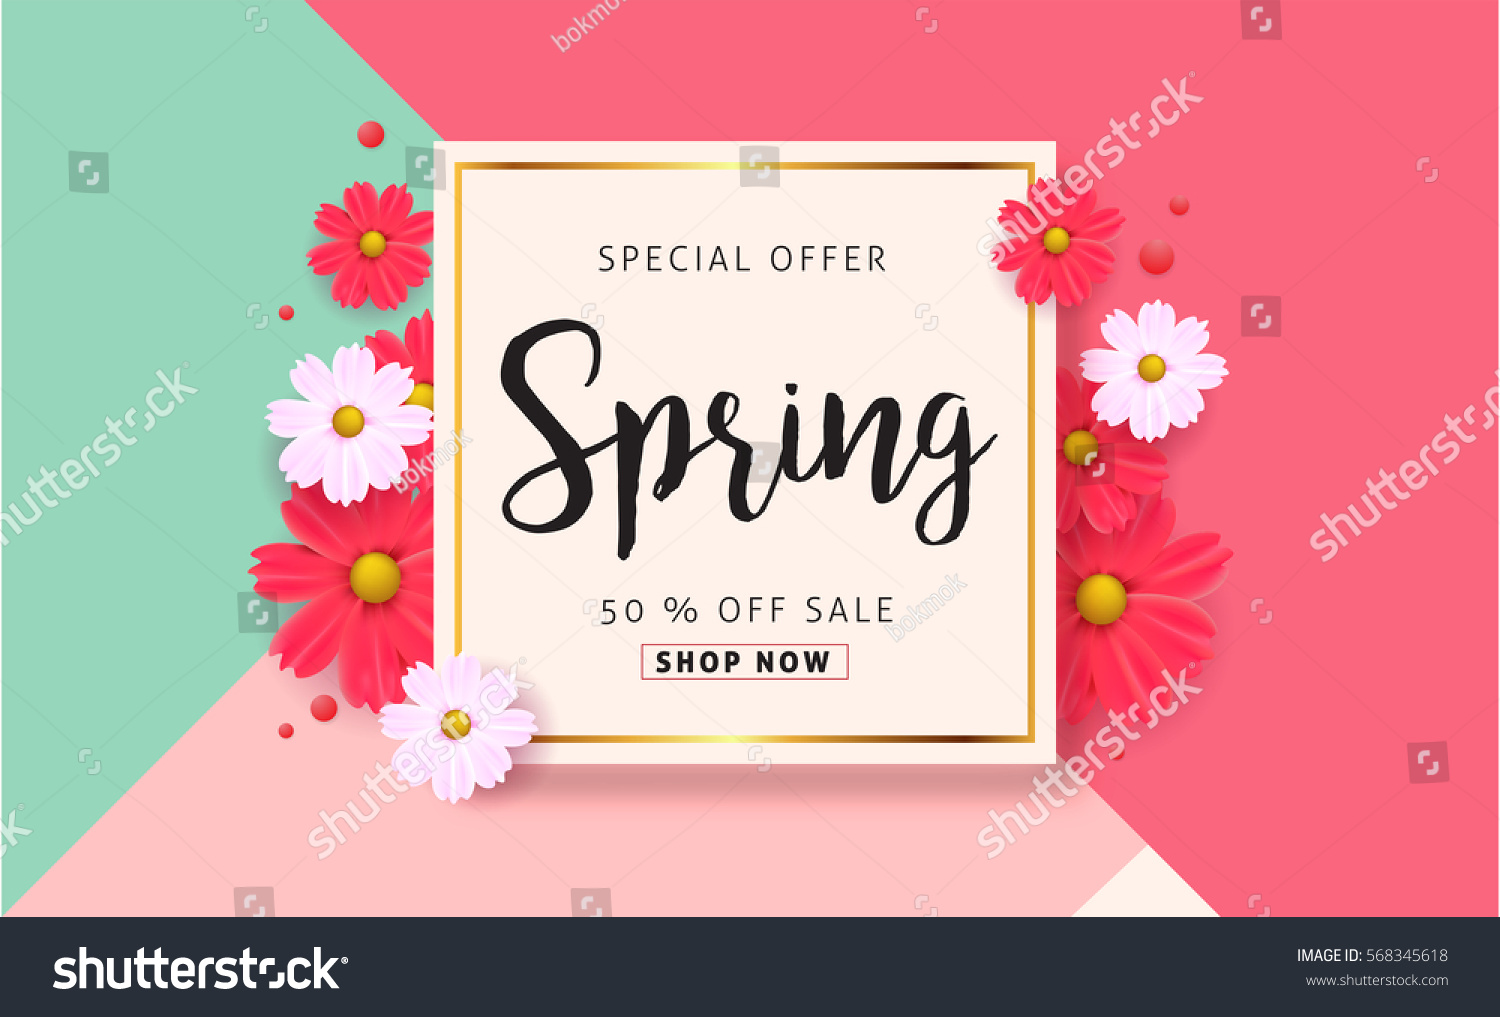 Spring sale background beautiful colorful flower stok vektr spring sale background with beautiful colorful flower vector illustration templatennerswallpaper izmirmasajfo